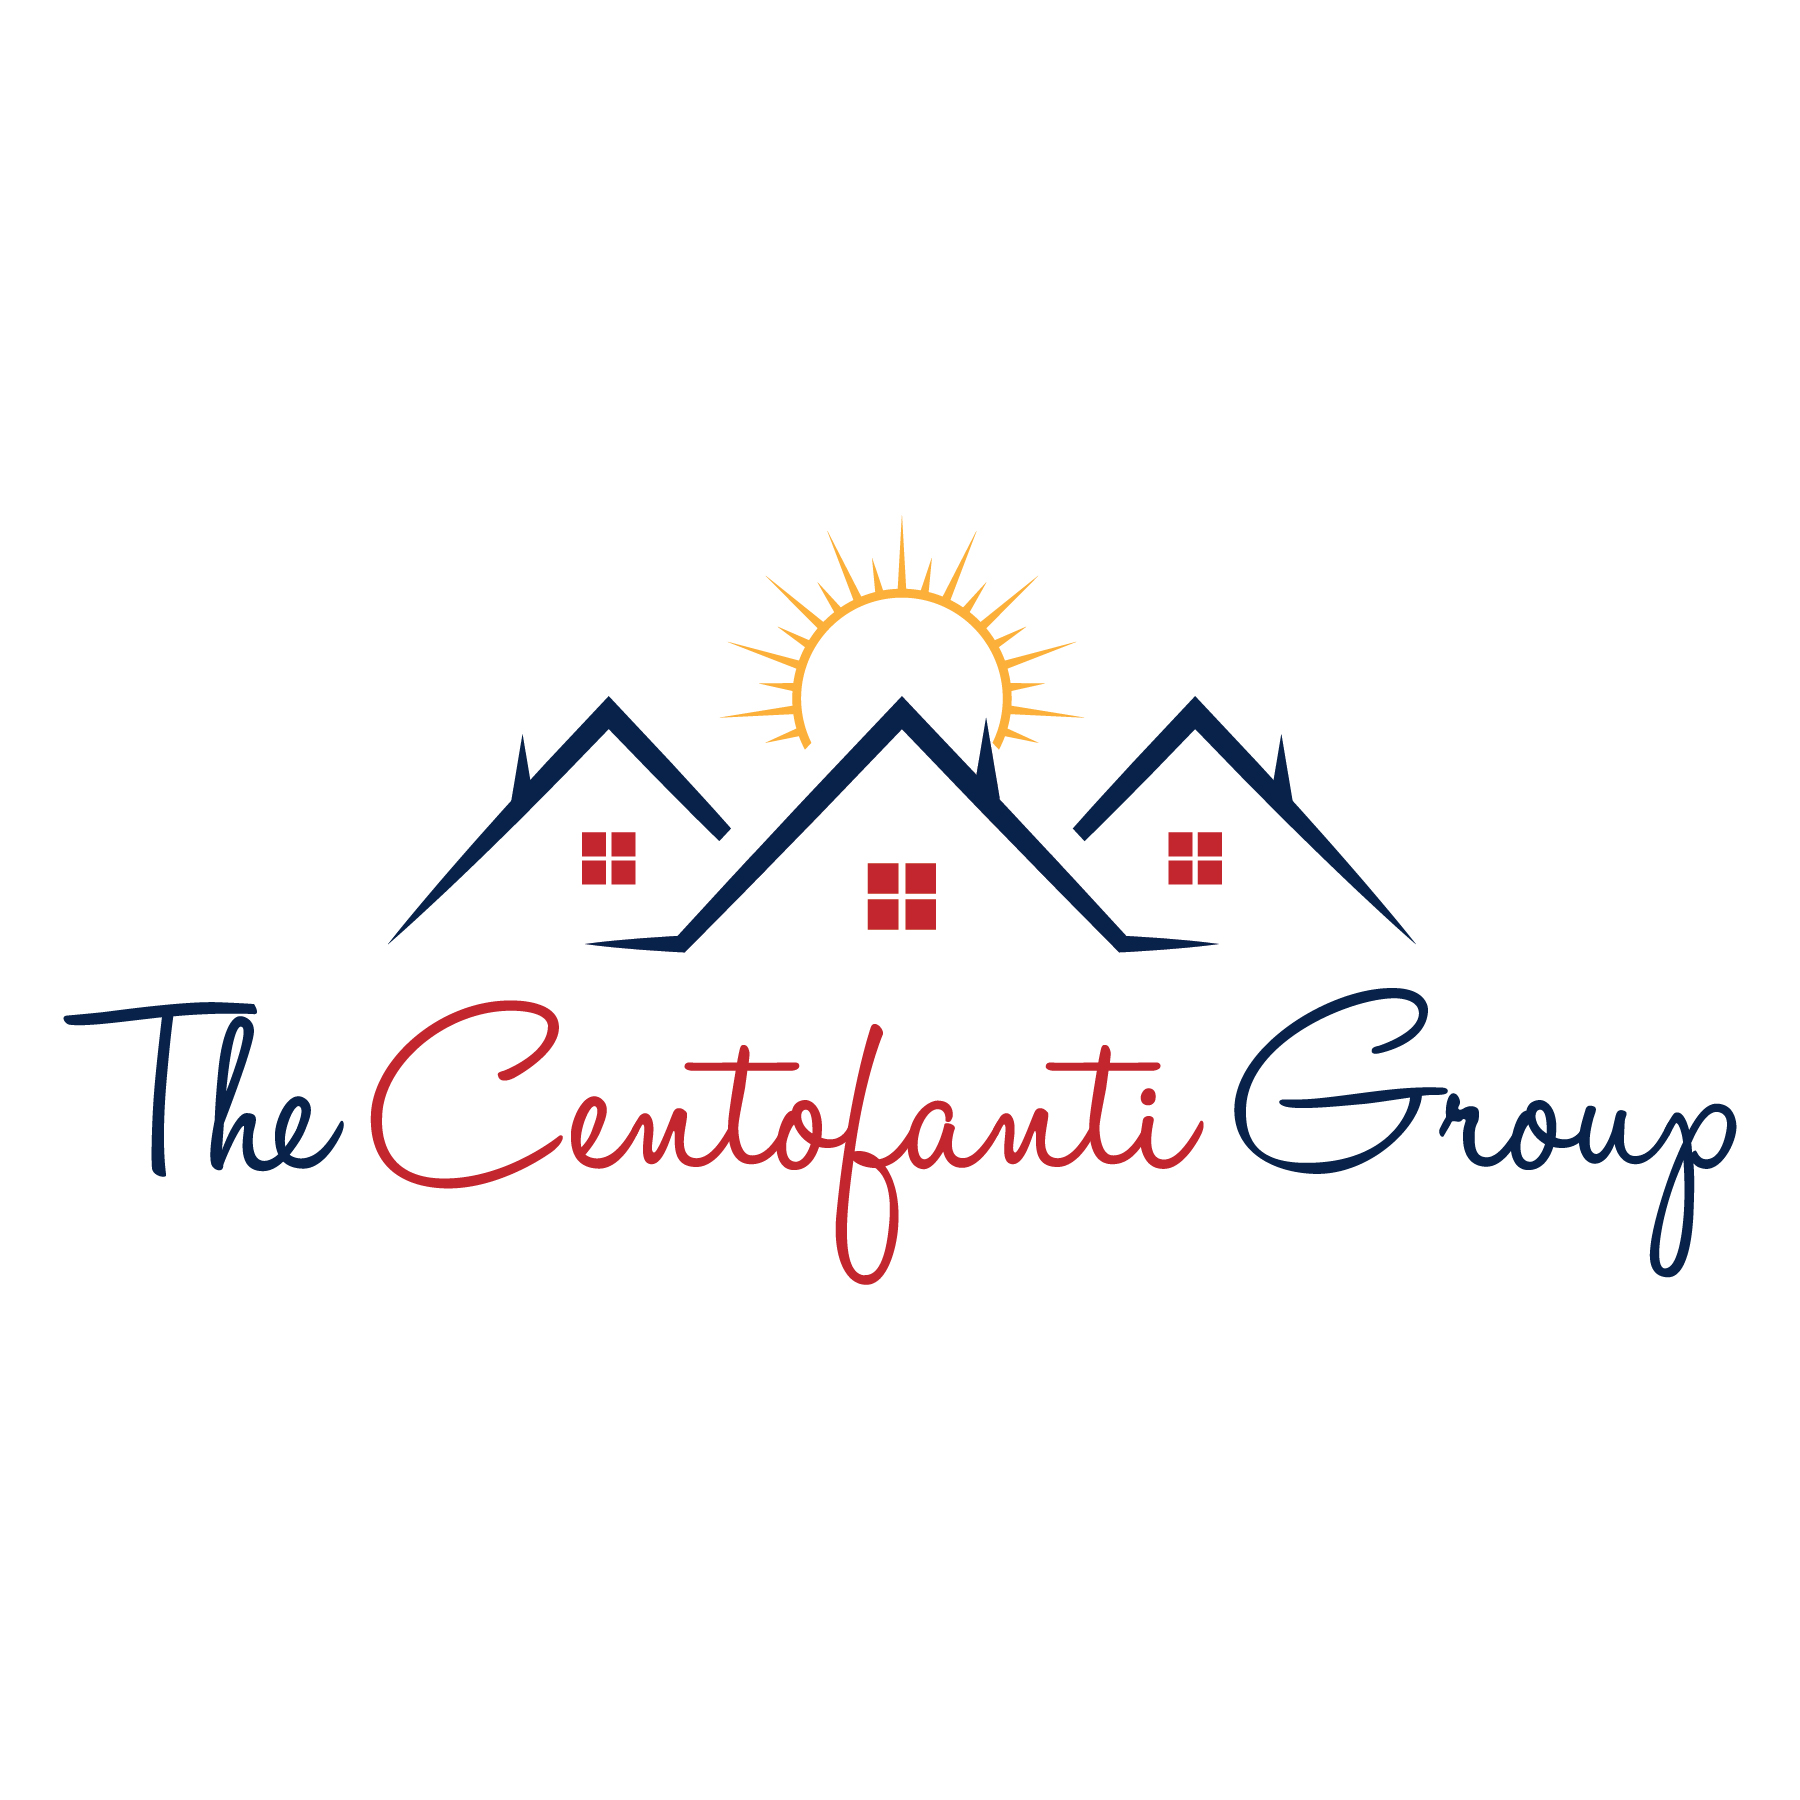 The Centofanti Group